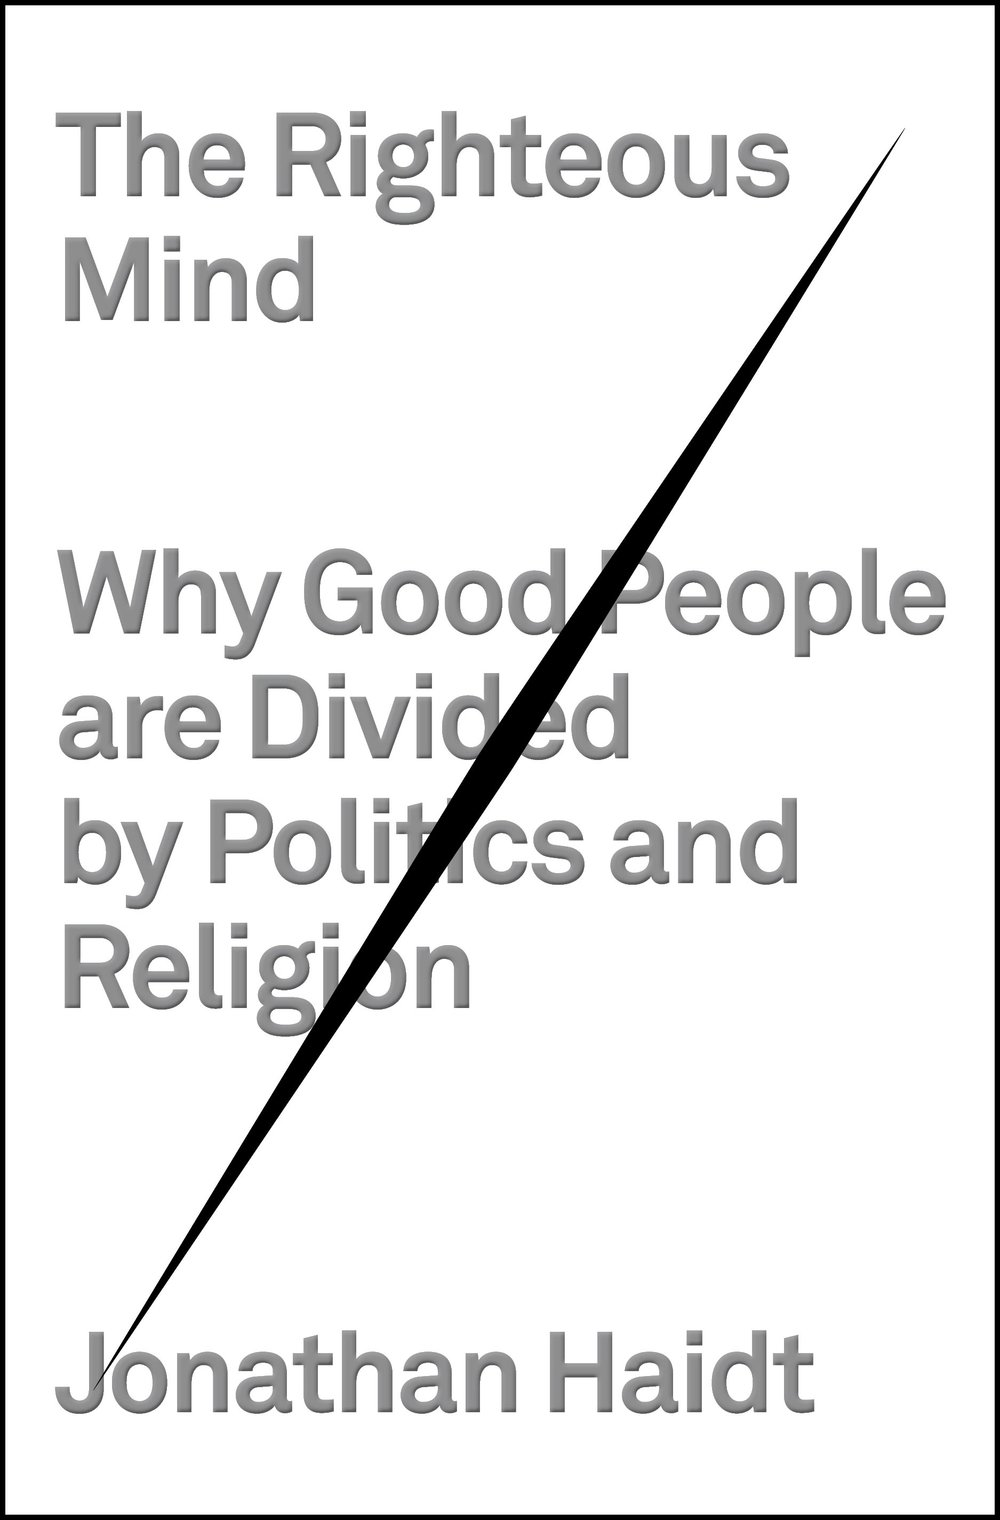 Jonathan Haidt • The righteous mind: Why good people are divided by politics and religion • Pantheon Books, 2012.